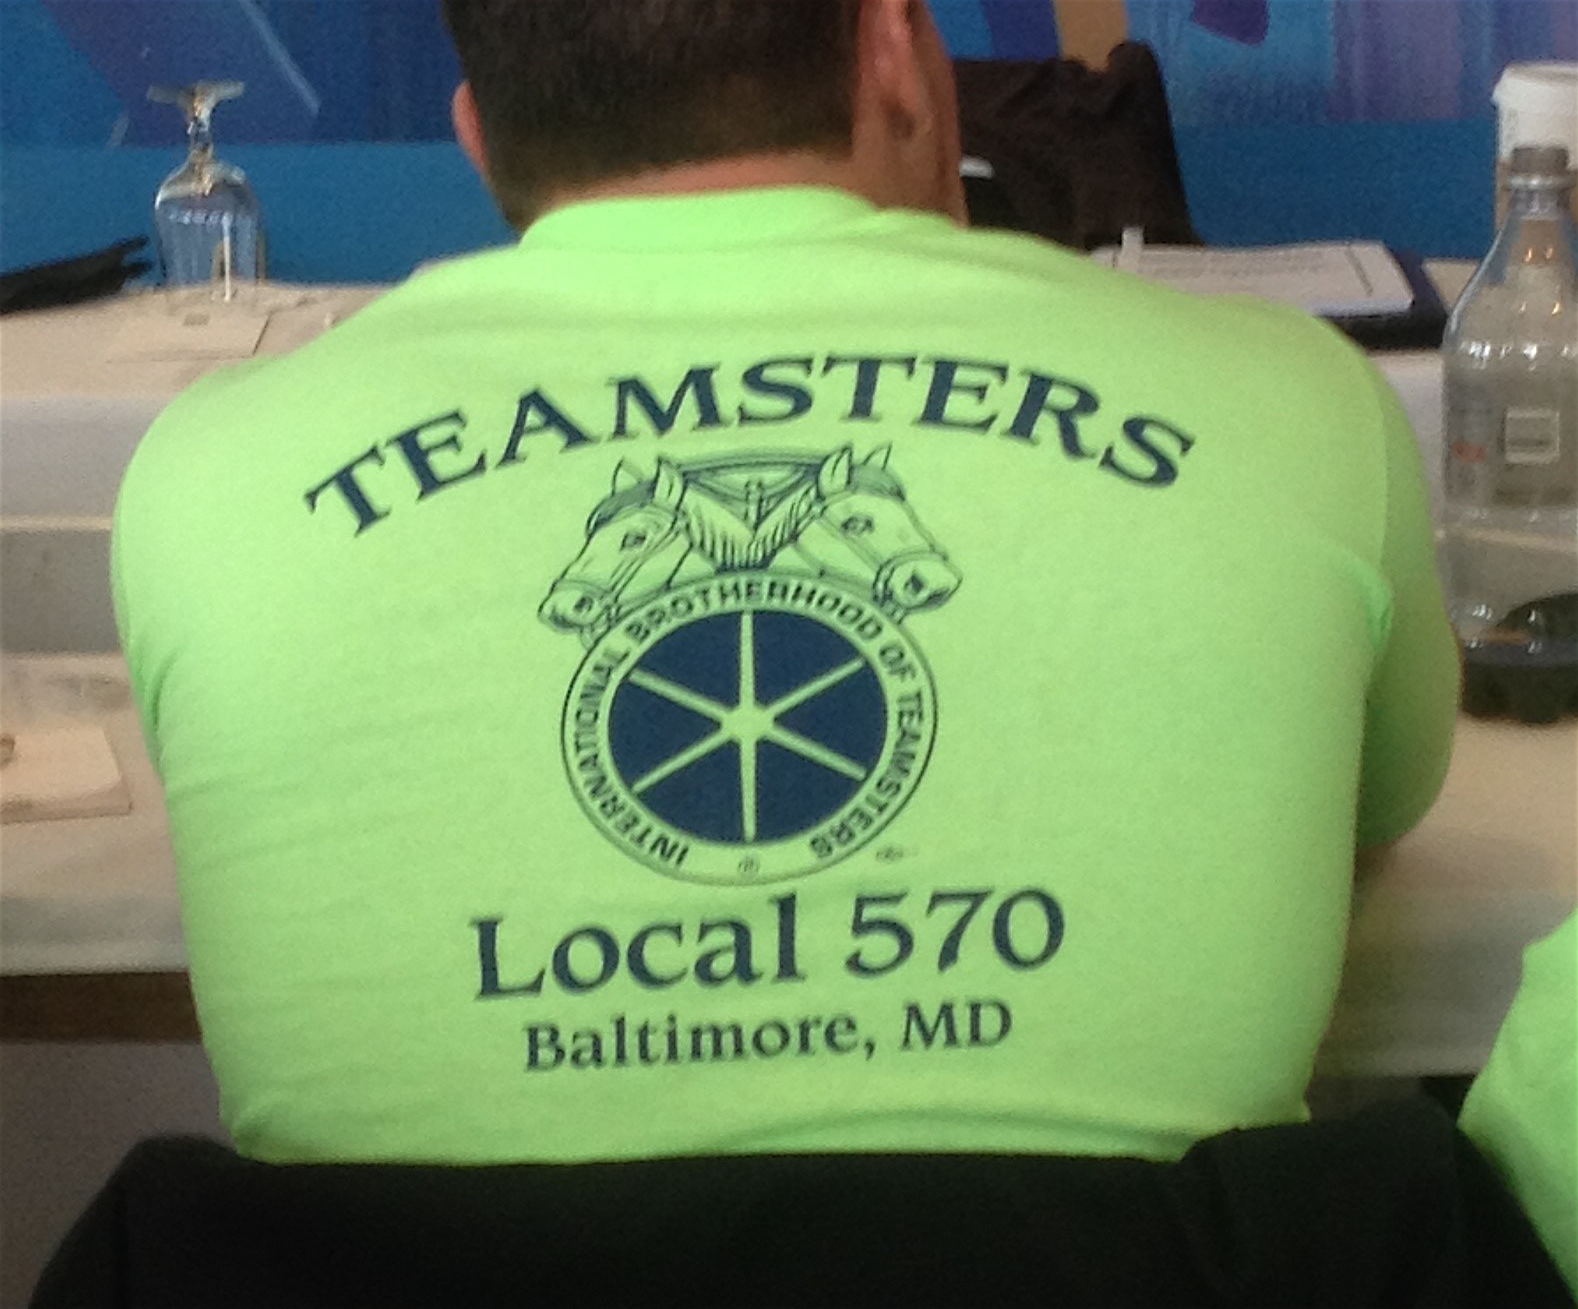 Teamsters local 570 -